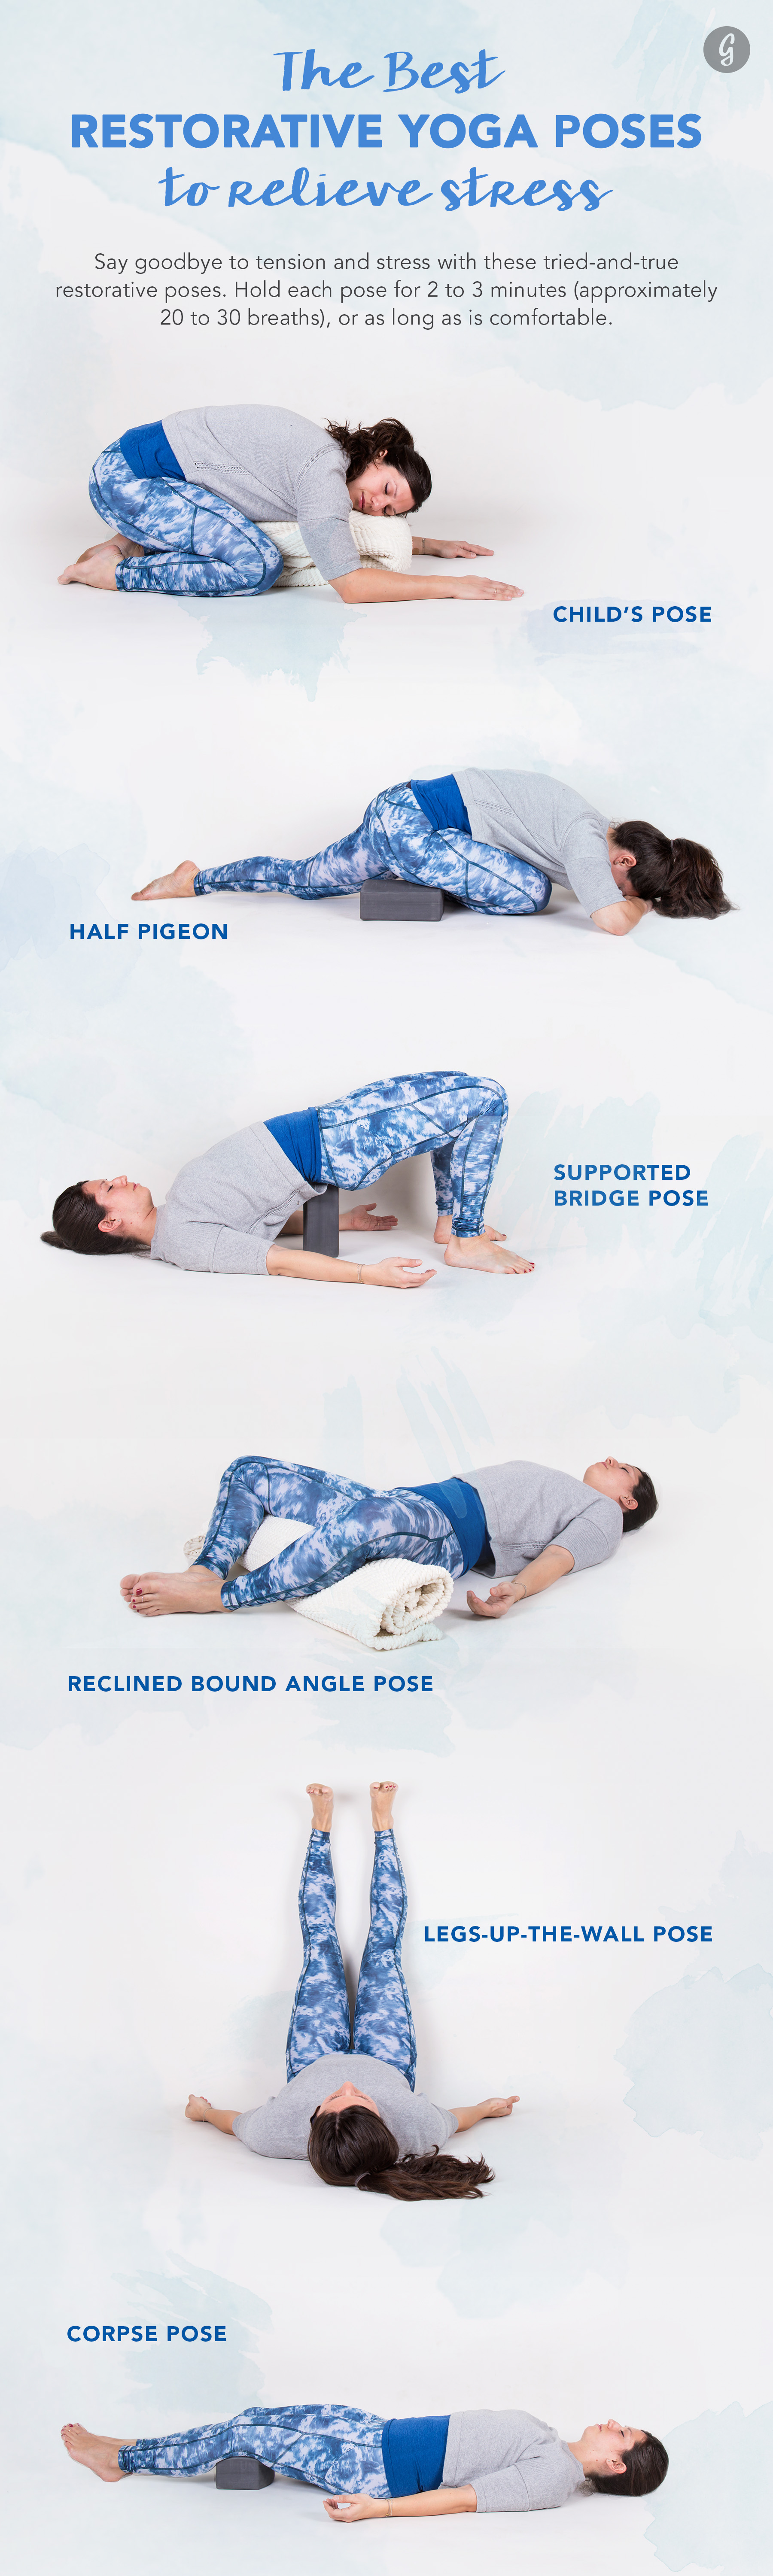 Restorative Yoga: The Best Restorative Yoga Poses to Relieve Stress